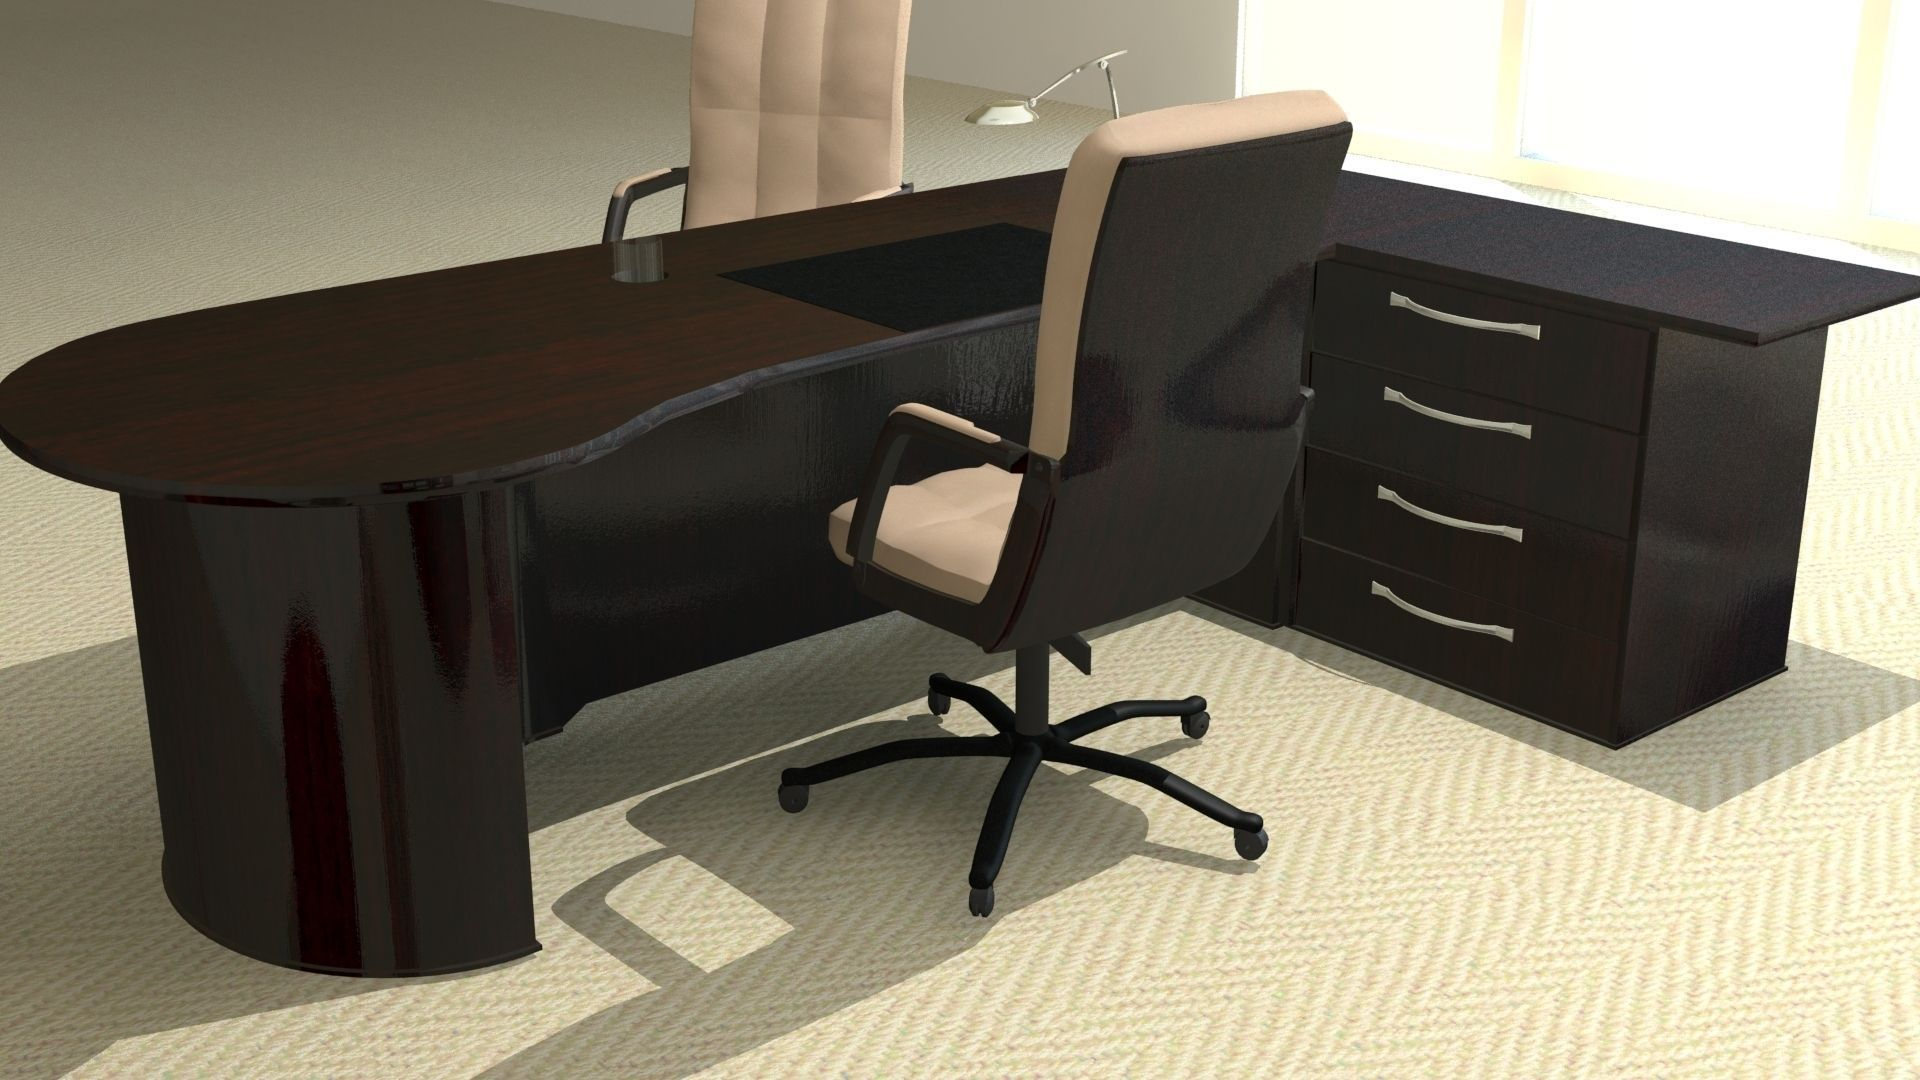 Lastest CGAxis Models Volume 11 Office Furnitures